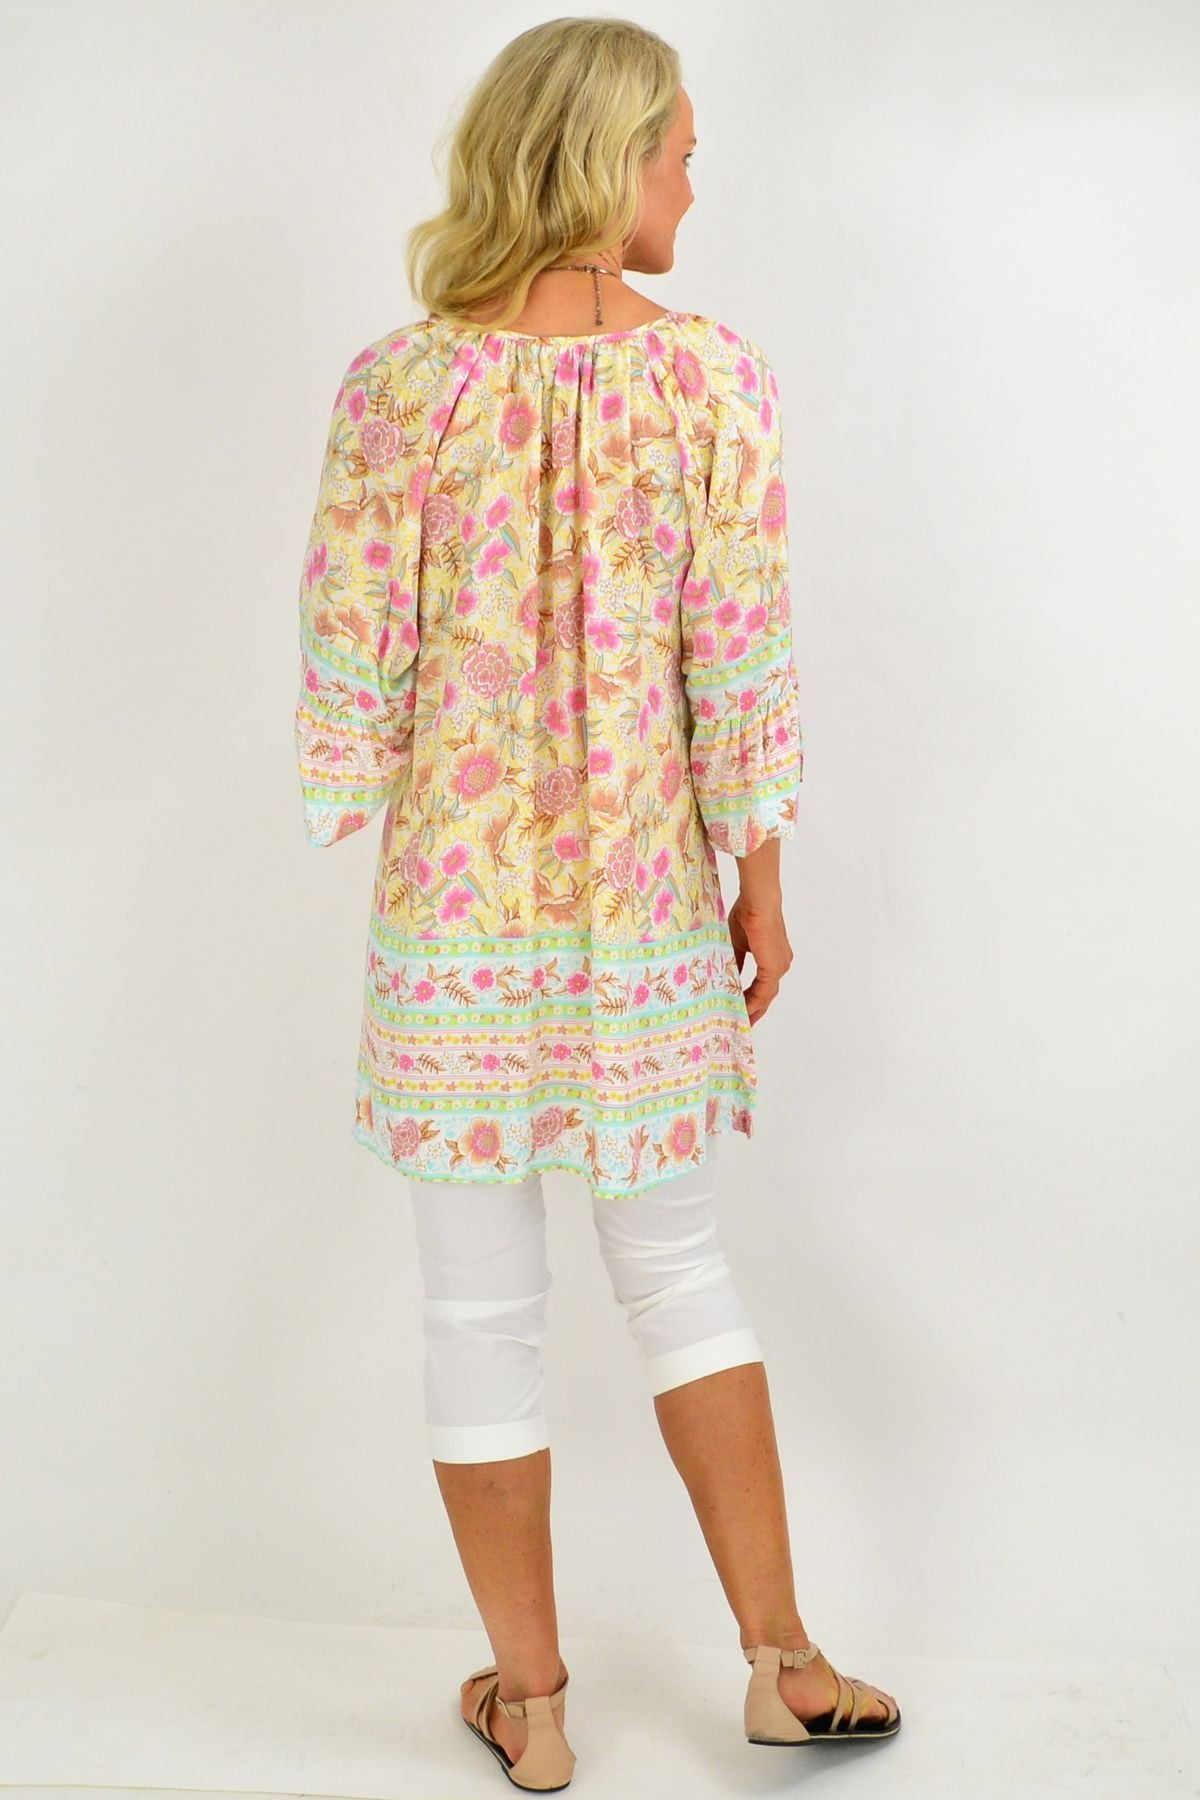 Yellow Floral Light & Pretty Tunic Top | I Love Tunics | Tunic Tops | Tunic | Tunic Dresses  | womens clothing online